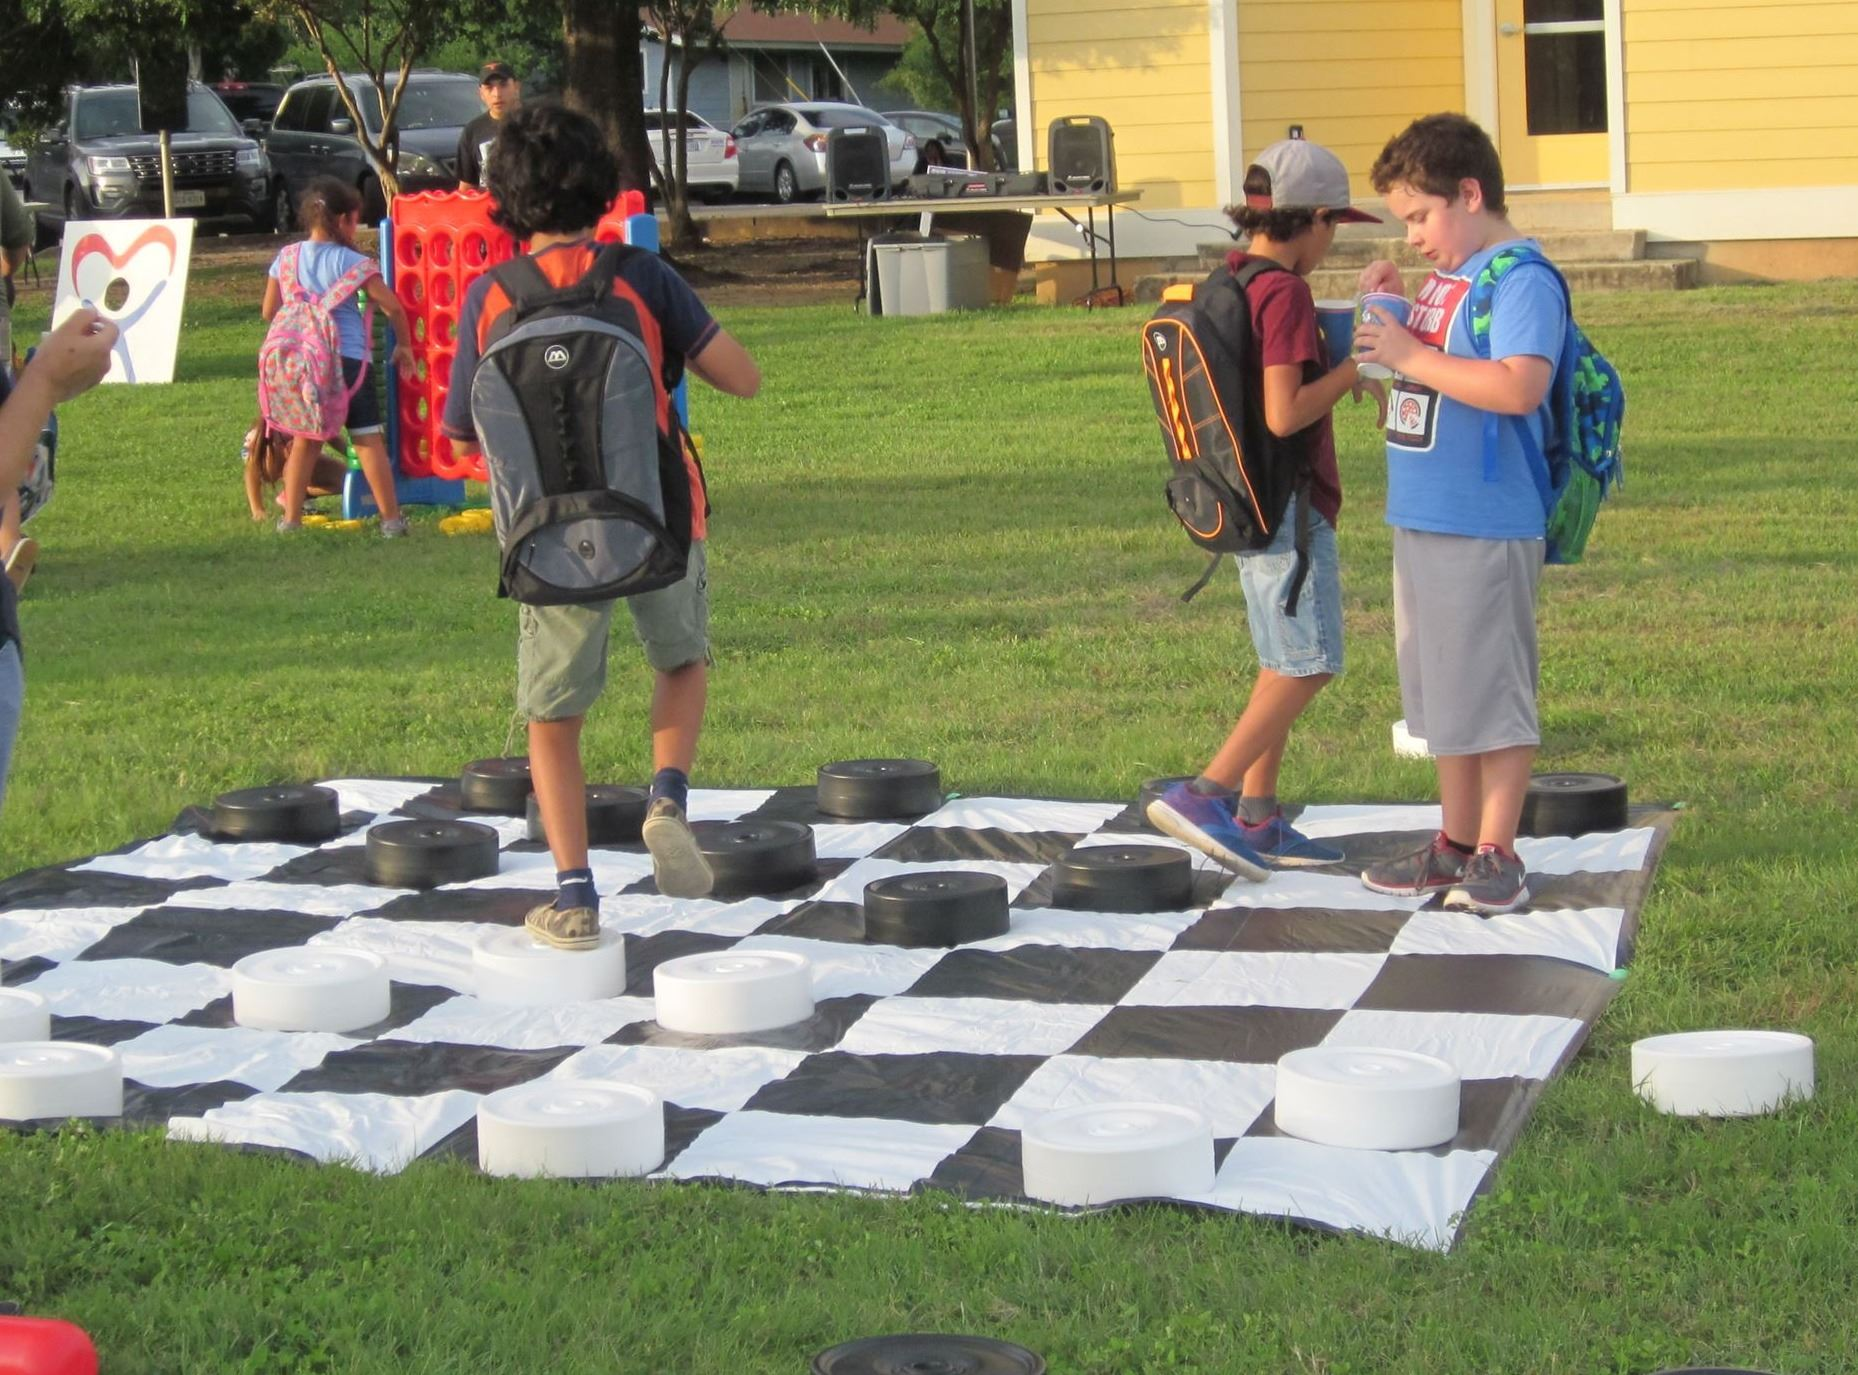 Photo of children playing on large chess board outside in a park